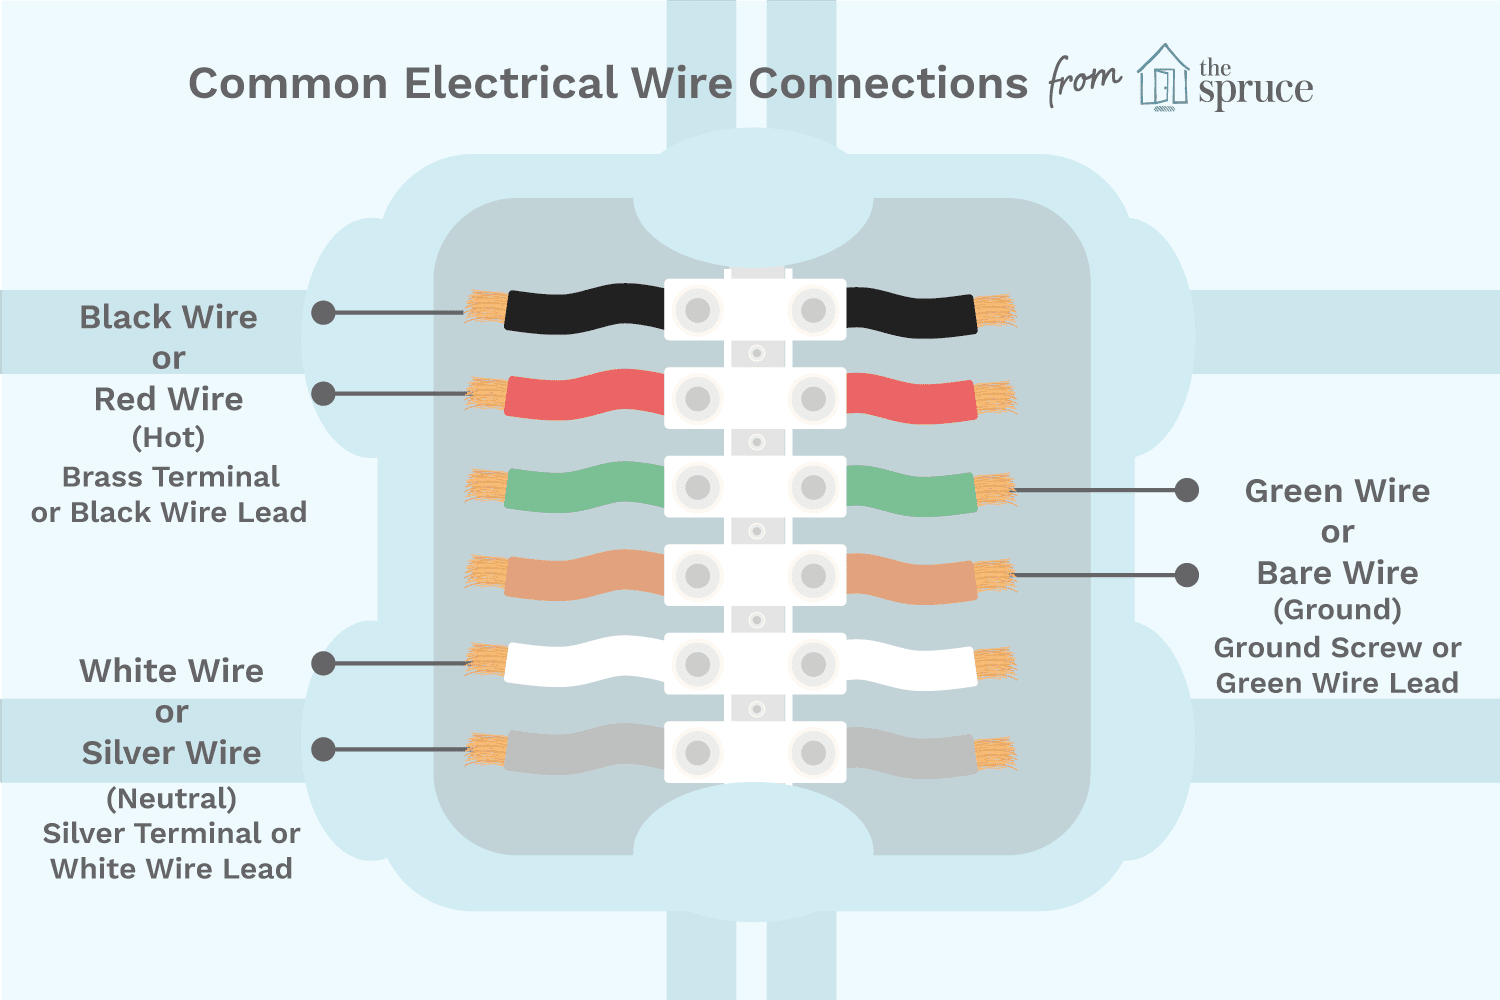 Color Coding Of Electrical Wires And Terminal Screws 3 Way Dimmer Wiring Diagram Light Switch In Middle Three Terminals